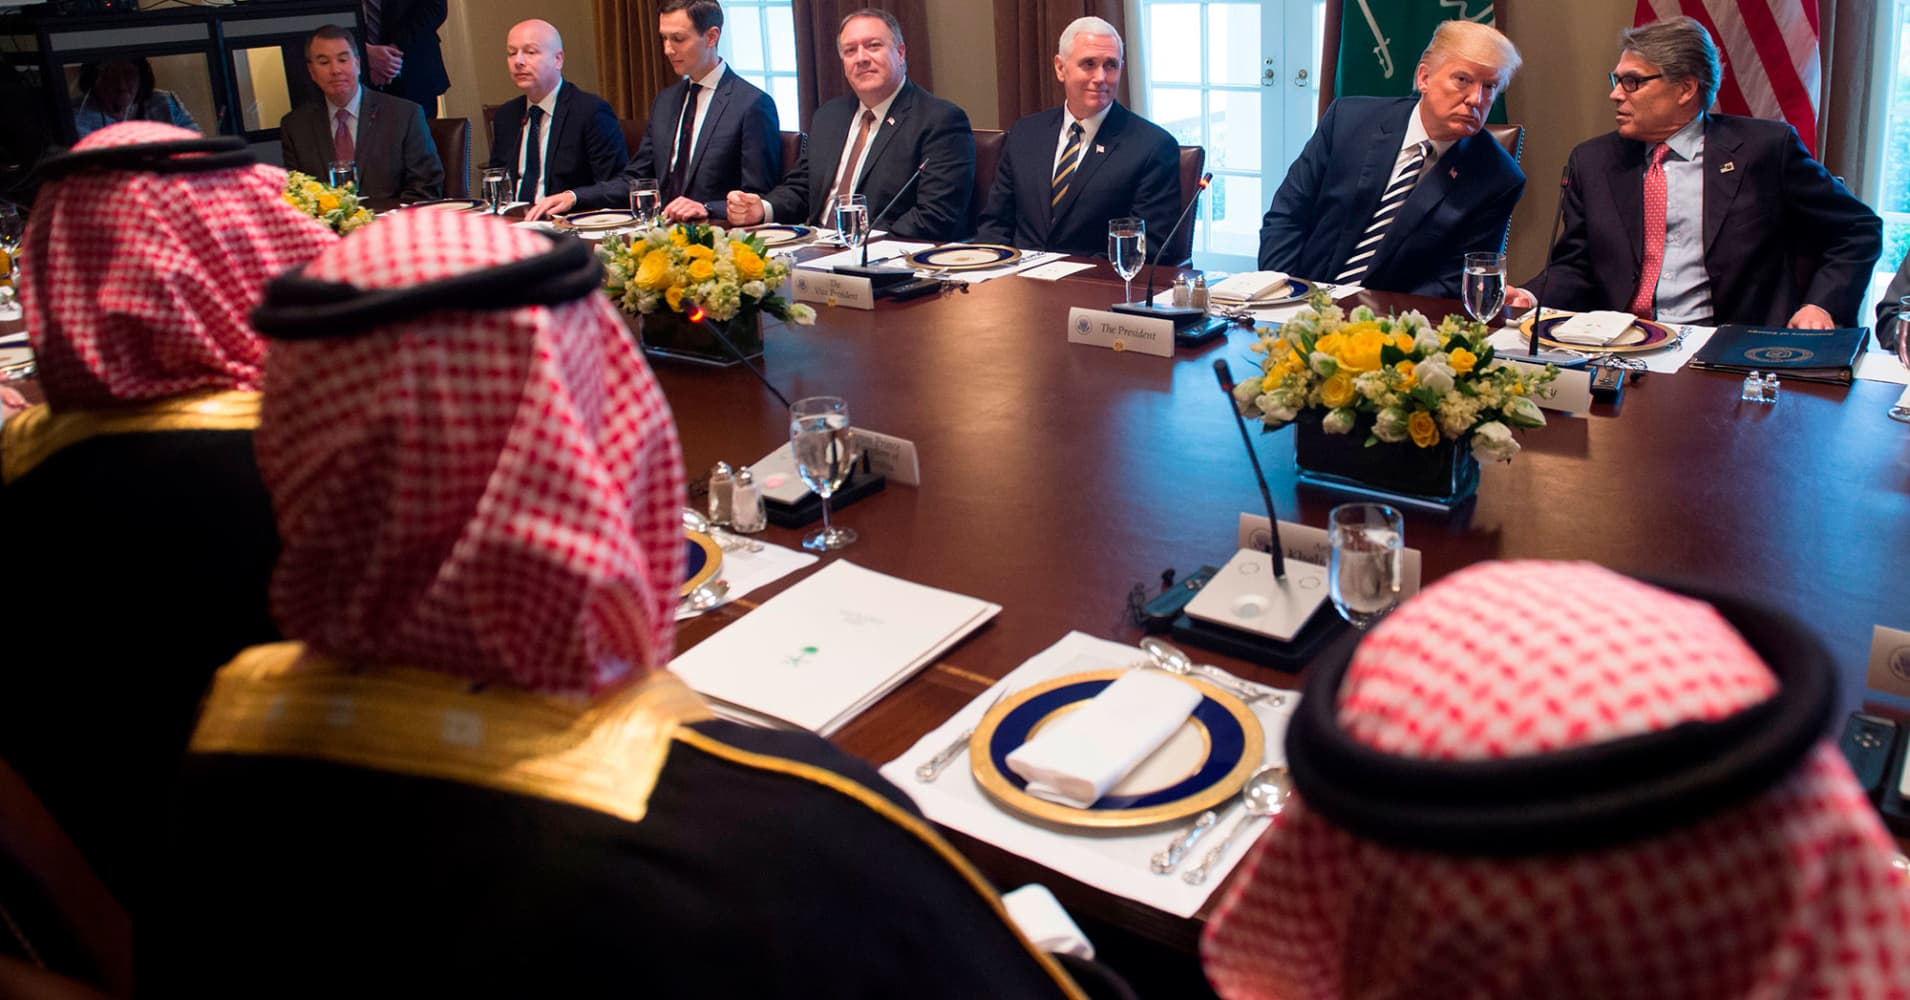 Trump team and Congress spar over nuclear energy transfers to Saudis